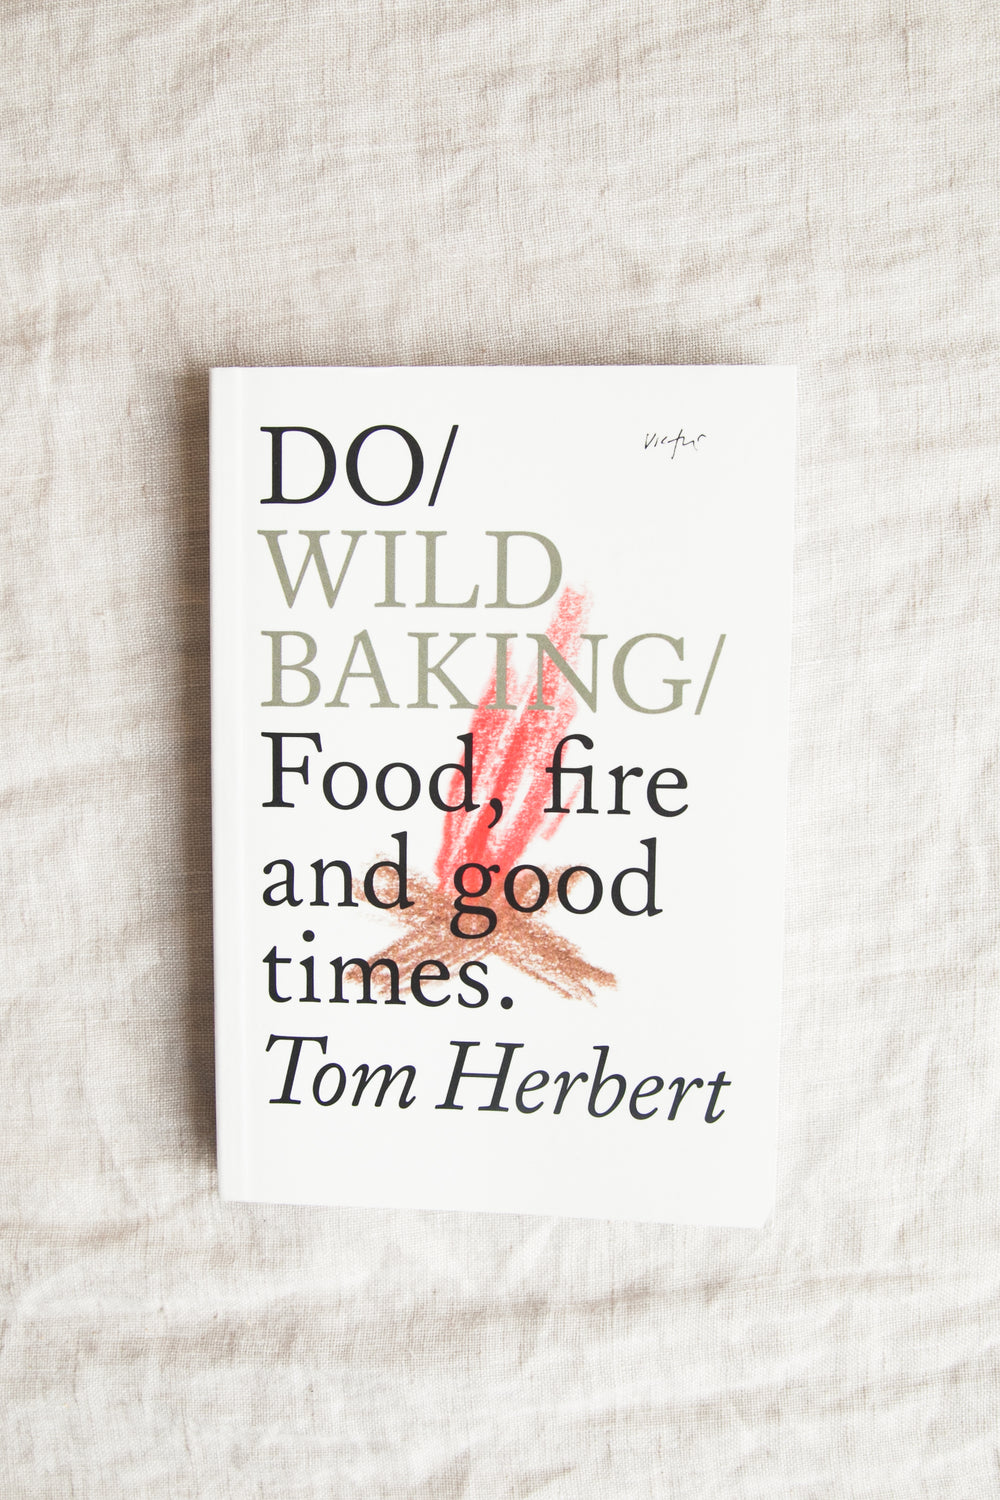 Do / Wild Baking / Food, Fire and Good Times